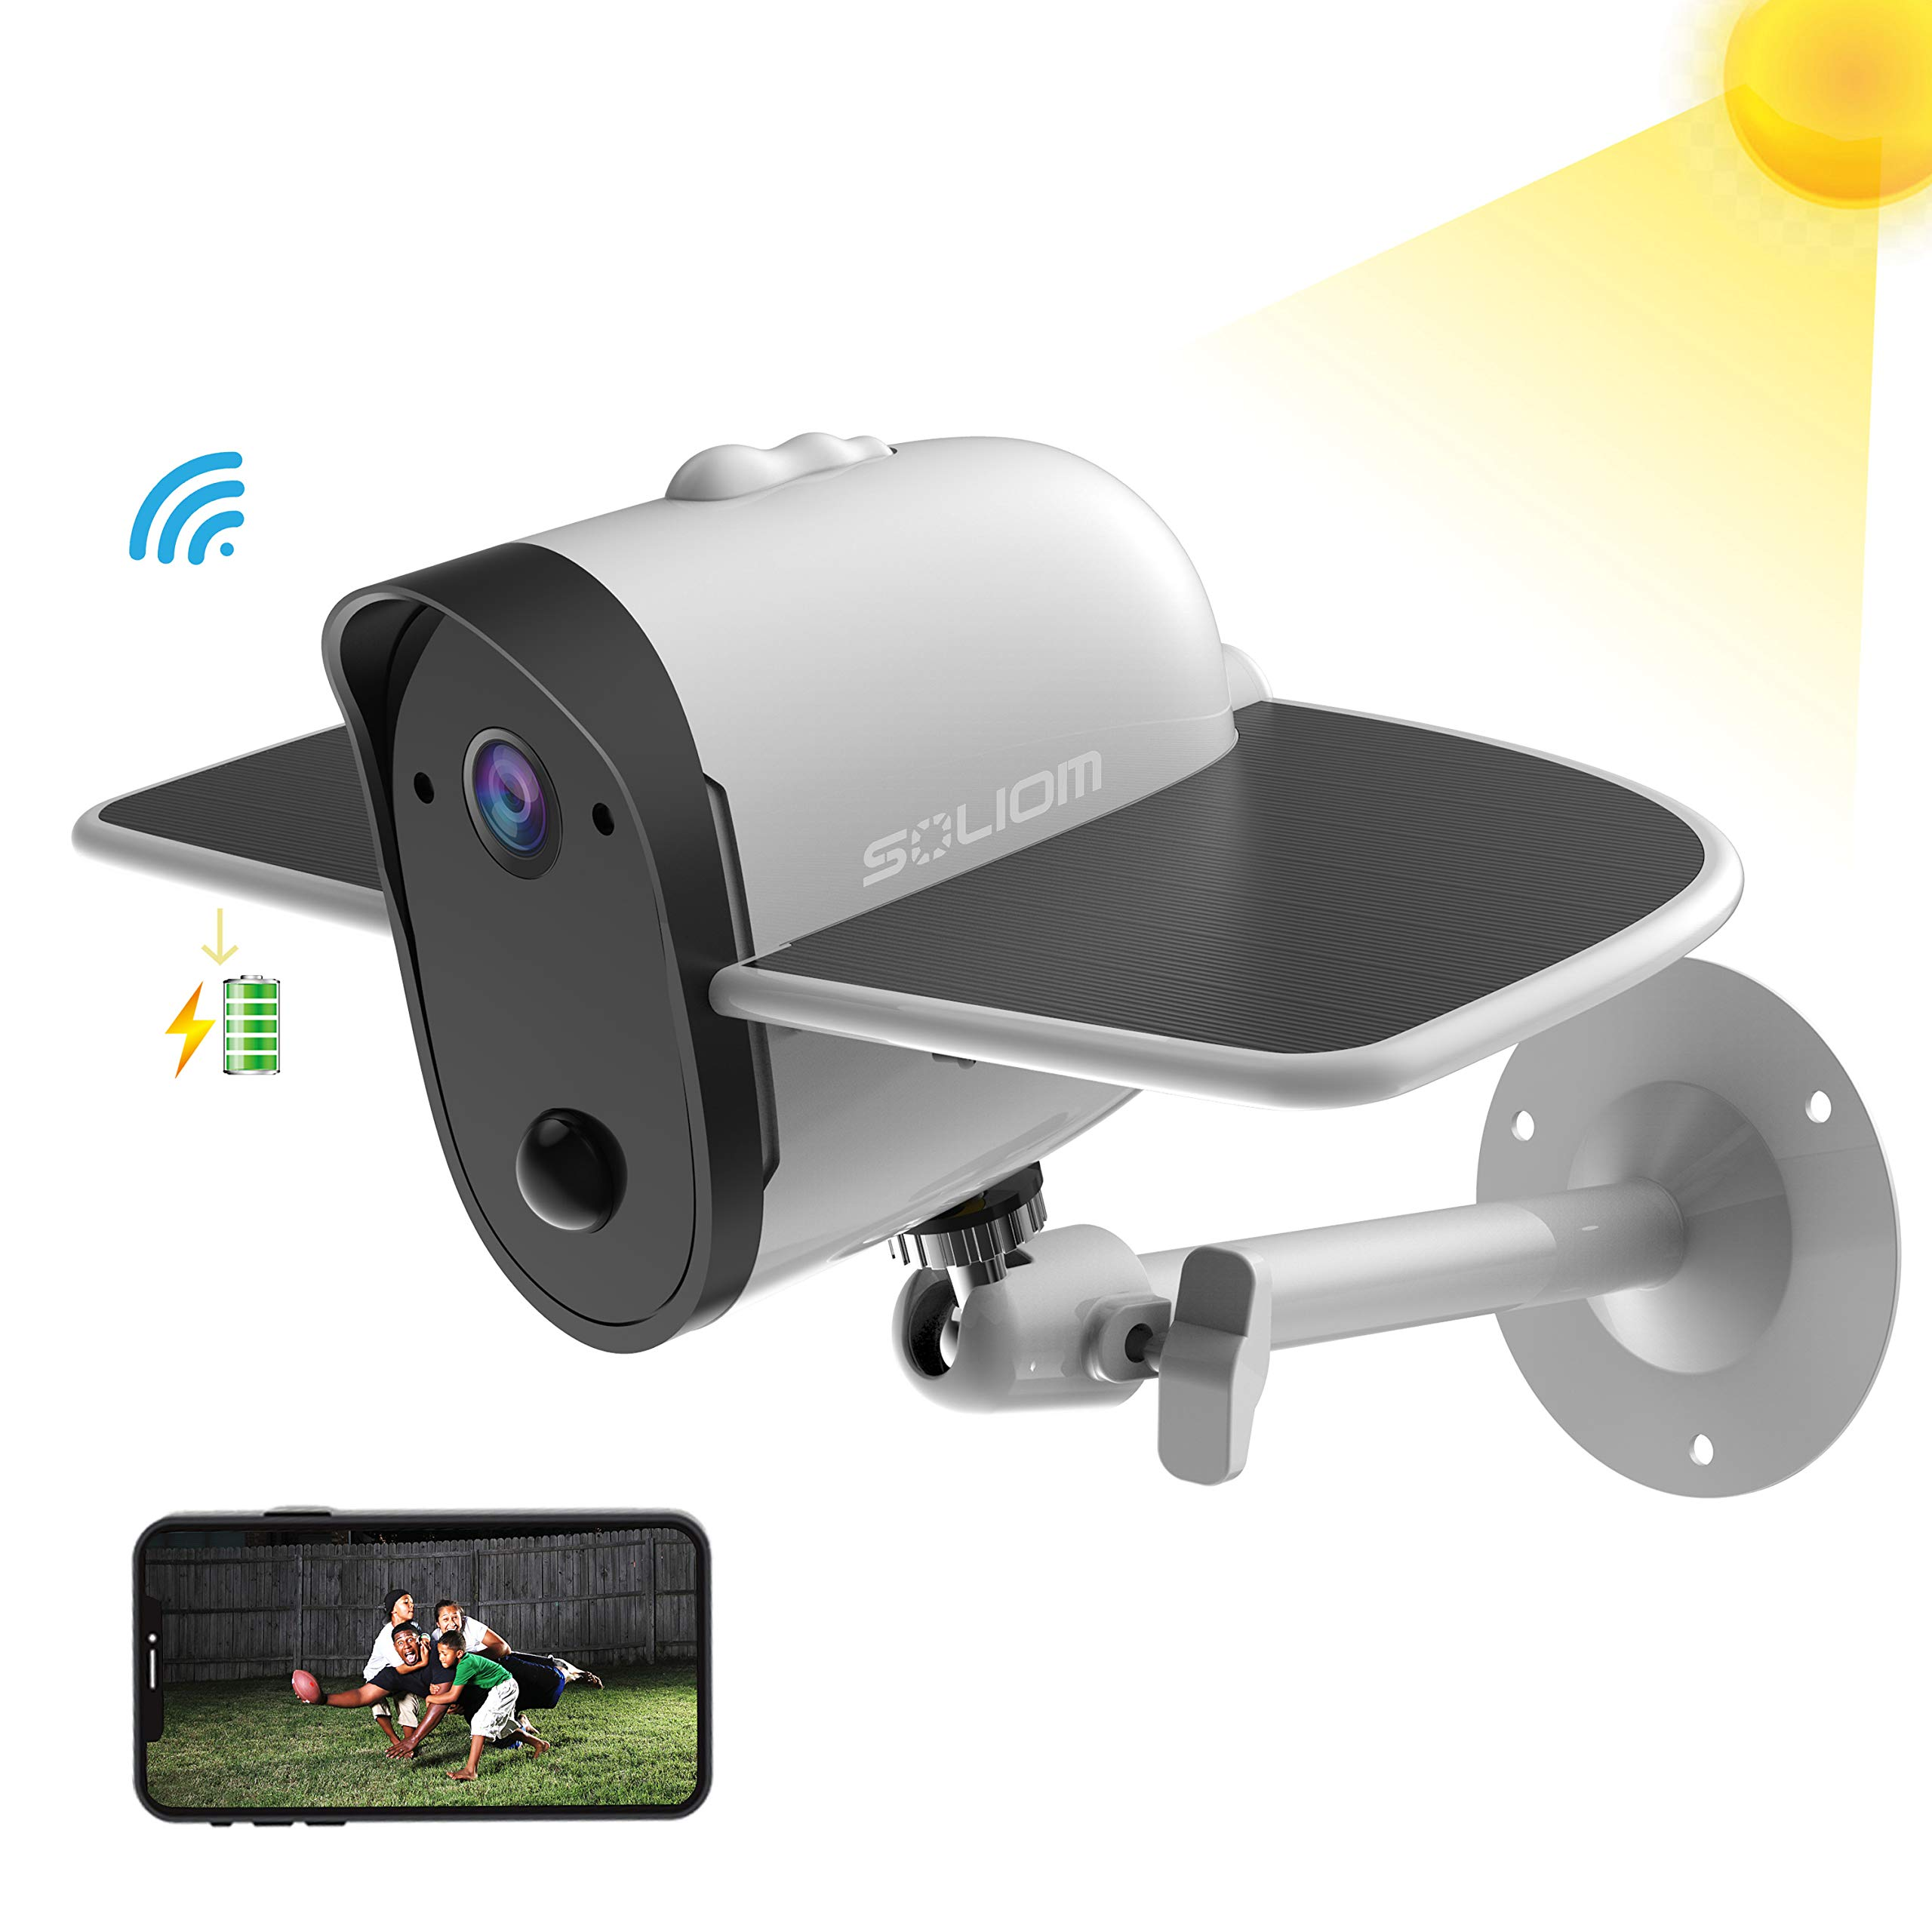 Outdoor Solar Battery Powered Security Camera, SOLIOM S60 1080p Home Wireless IP Cam with Accurate Motion Detection; Wide Angle Range, Quick Alert and Night Vision by SOLIOM